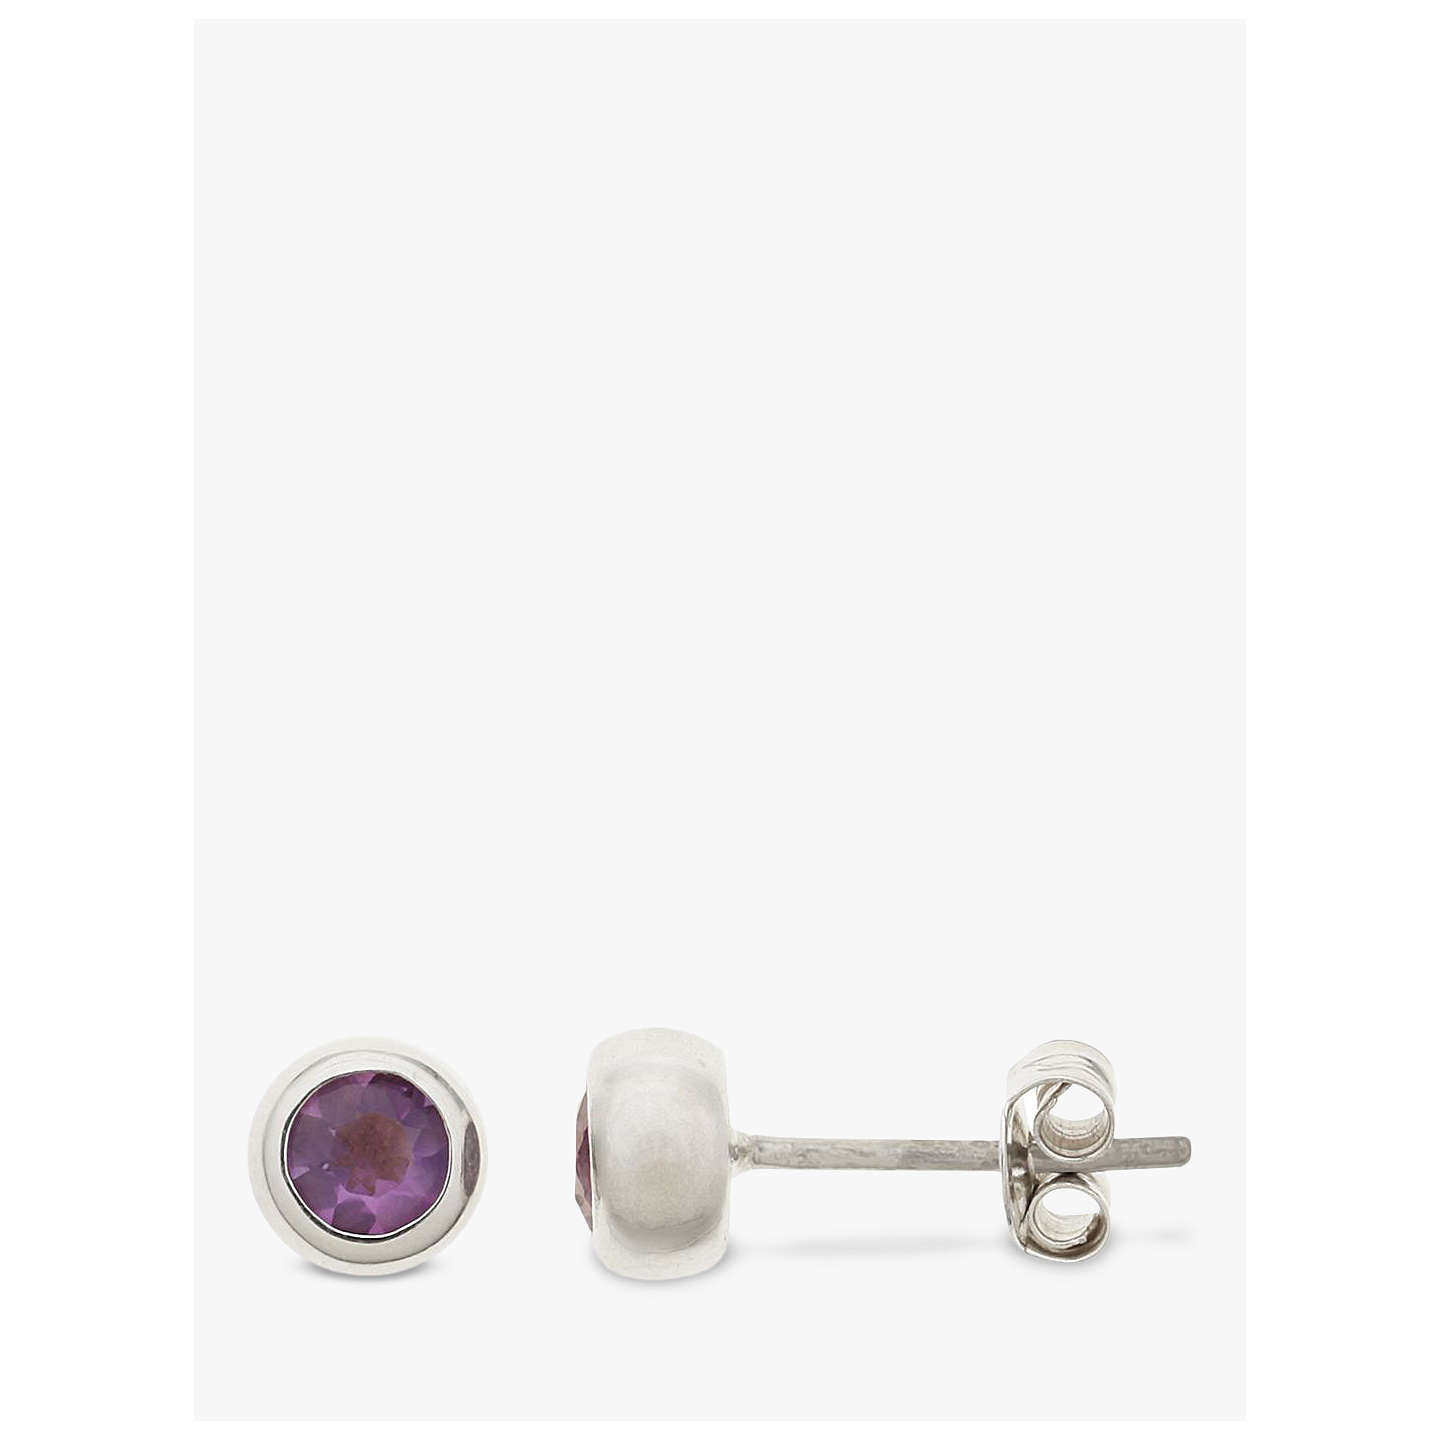 BuyNina B Sterling Silver Round Stud Earrings, Amethyst Online at johnlewis.com